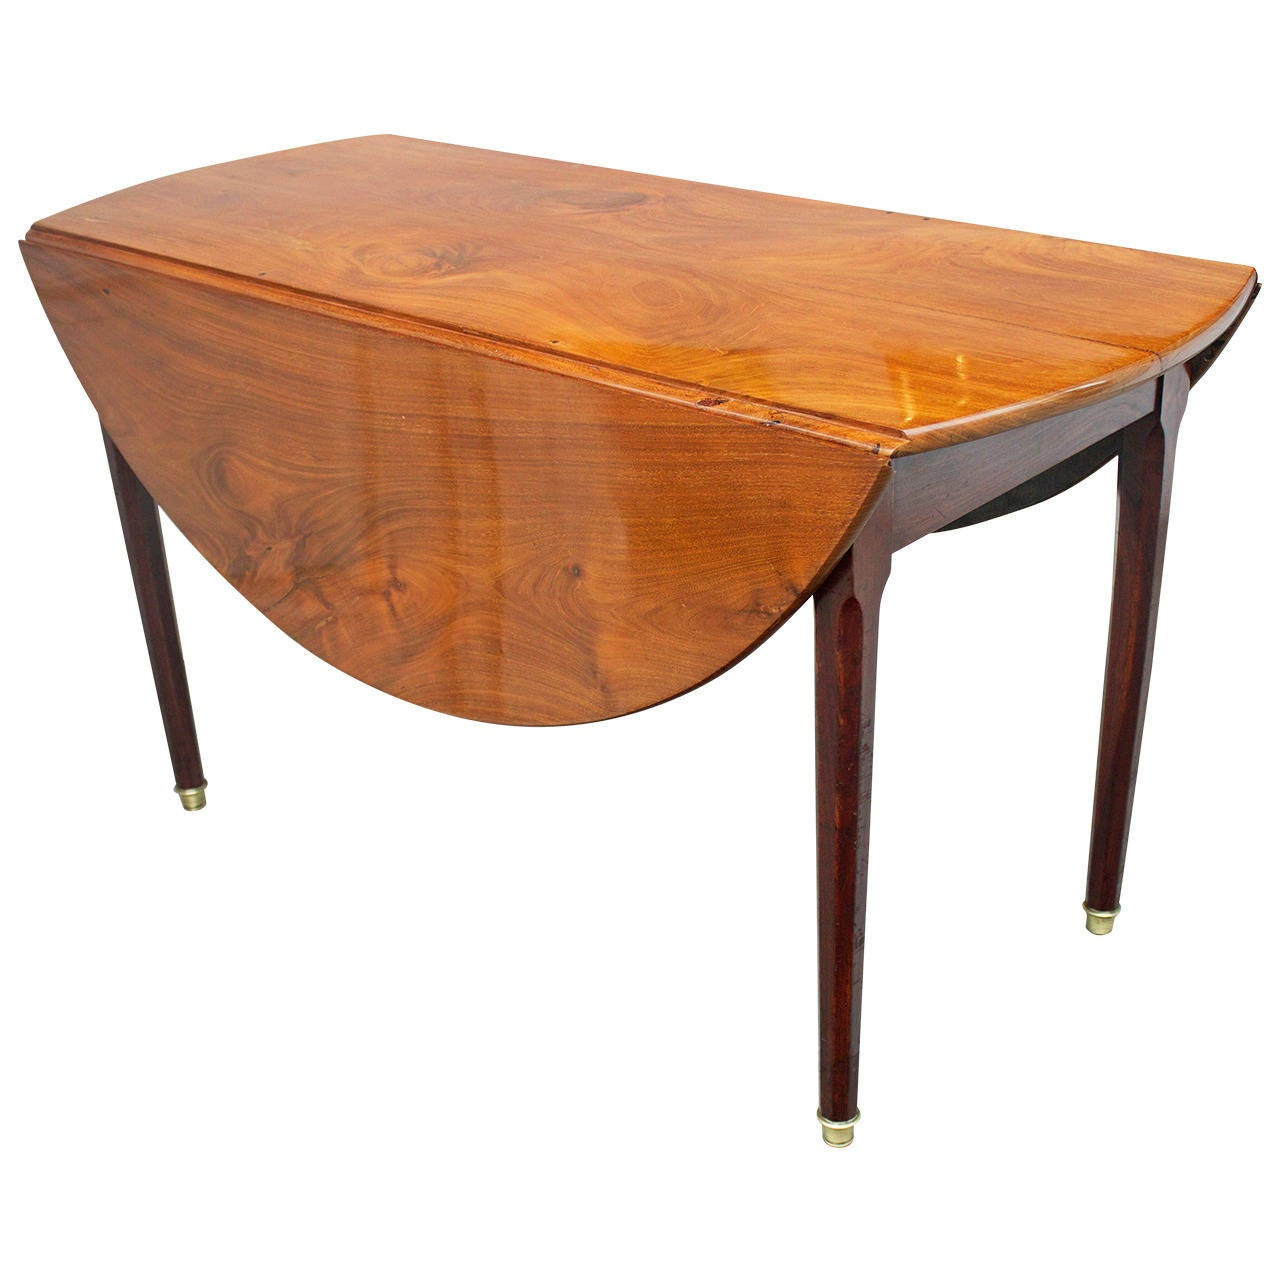 19th century french mahogany round drop leaf table at 1stdibs for Round drop leaf dining table